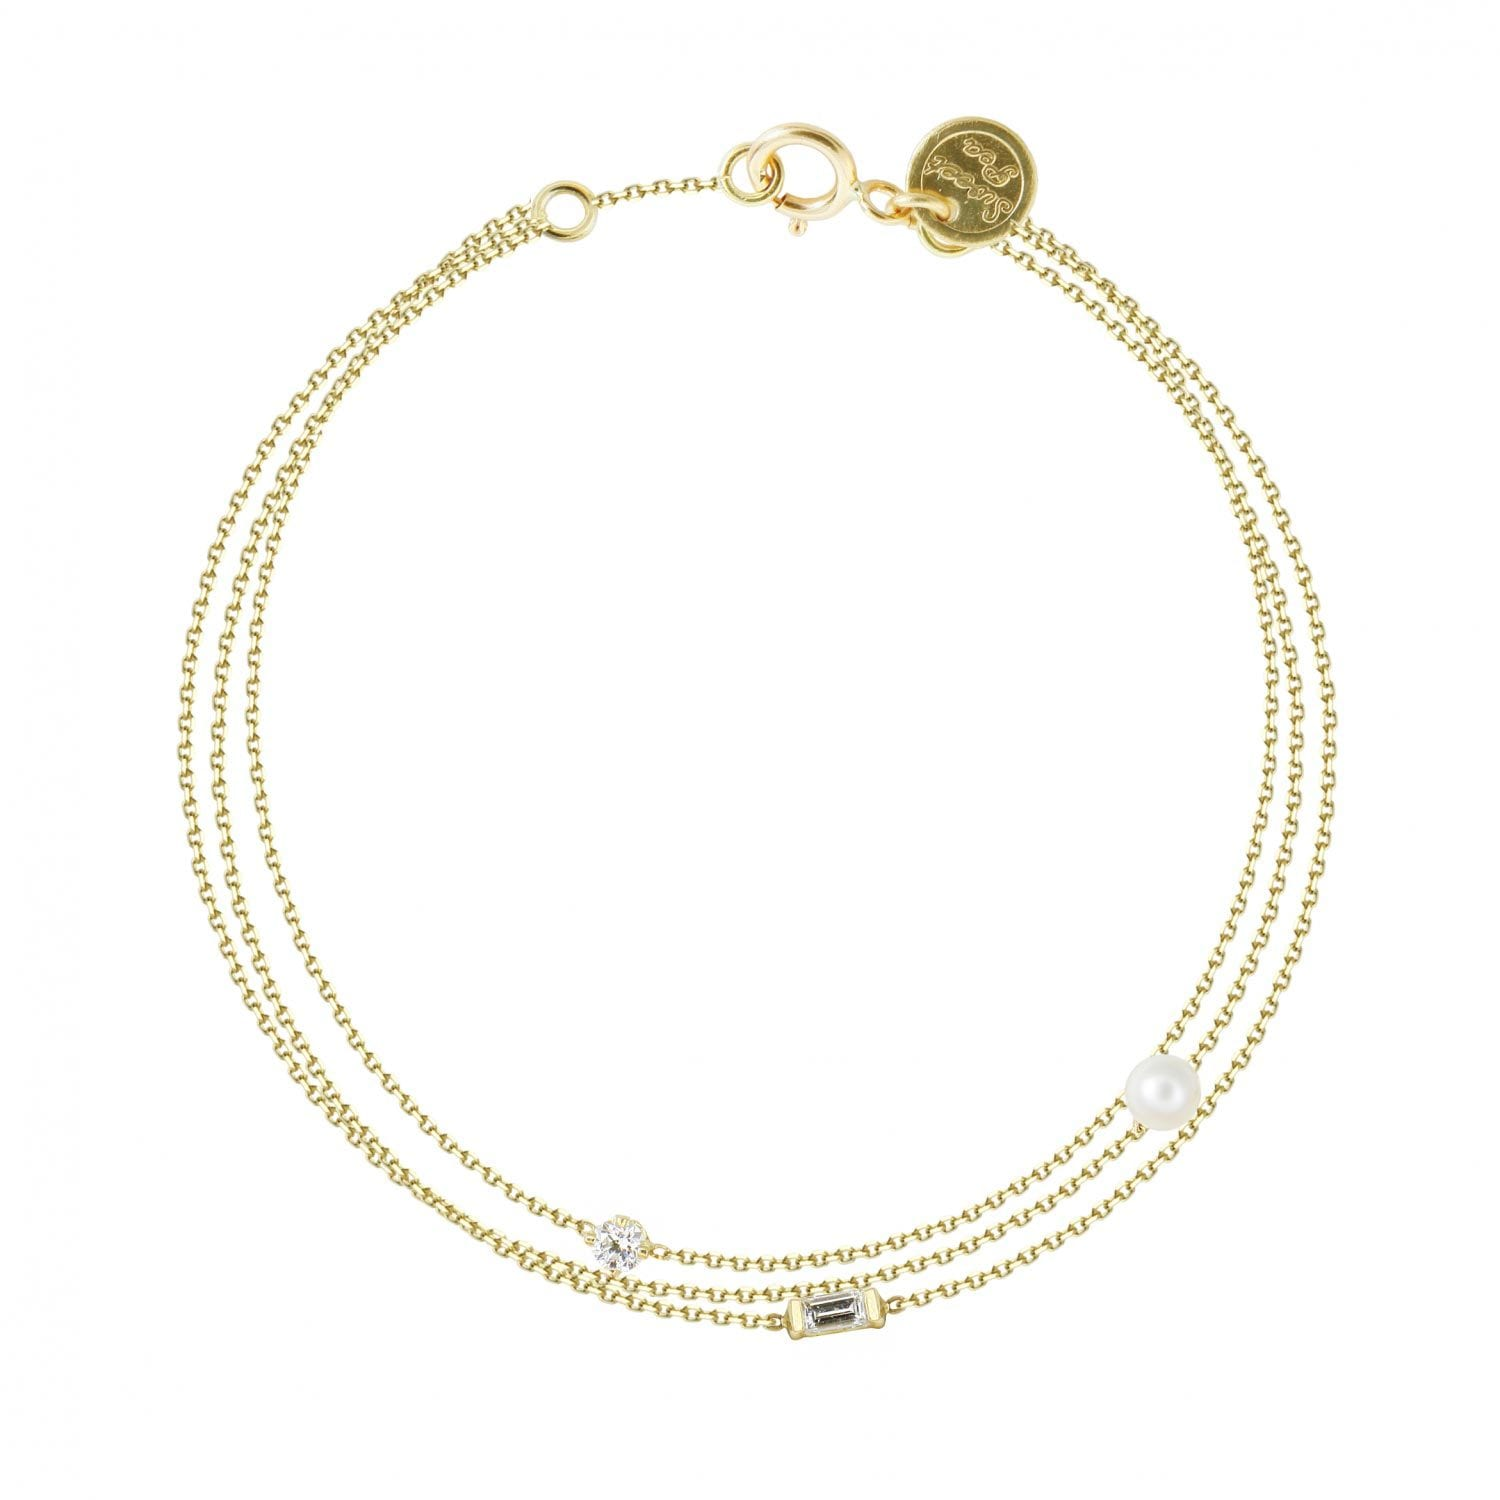 Vincents Fine Jewelry | Sweet Pea | 3 Strand Chain Bracelet